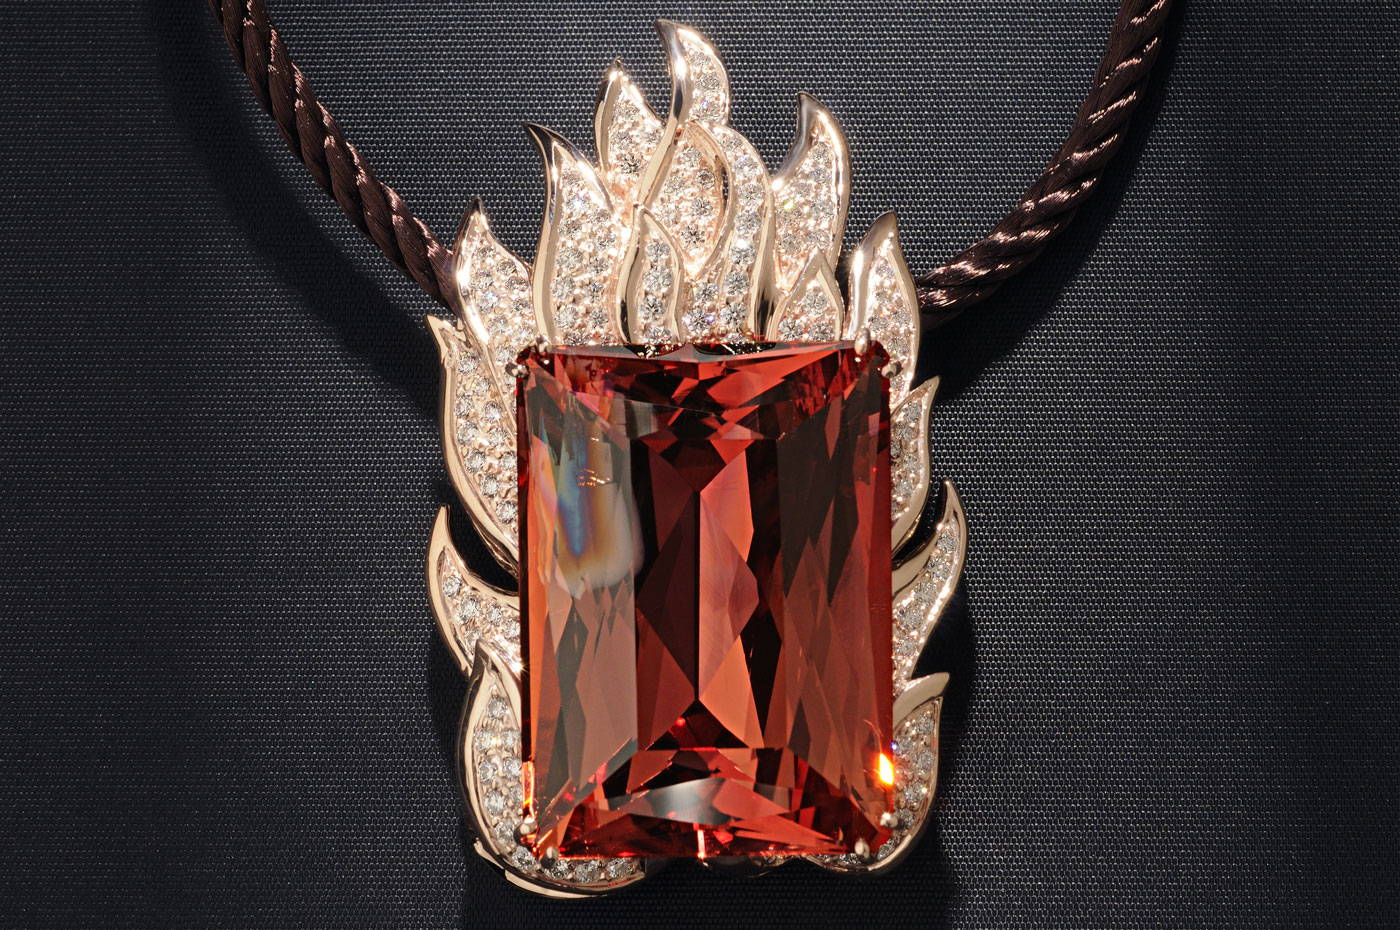 Image of Blaze Necklace by Lester Lampert Museum Project